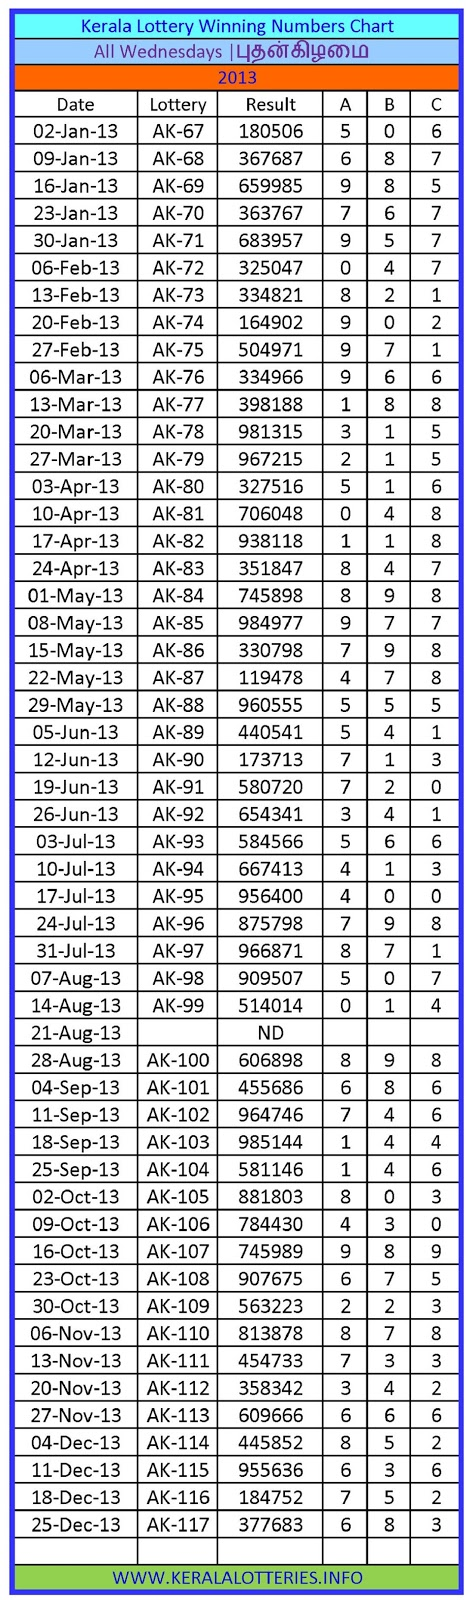 Kerala Lottery Winning Number Chart Wednesday -2013